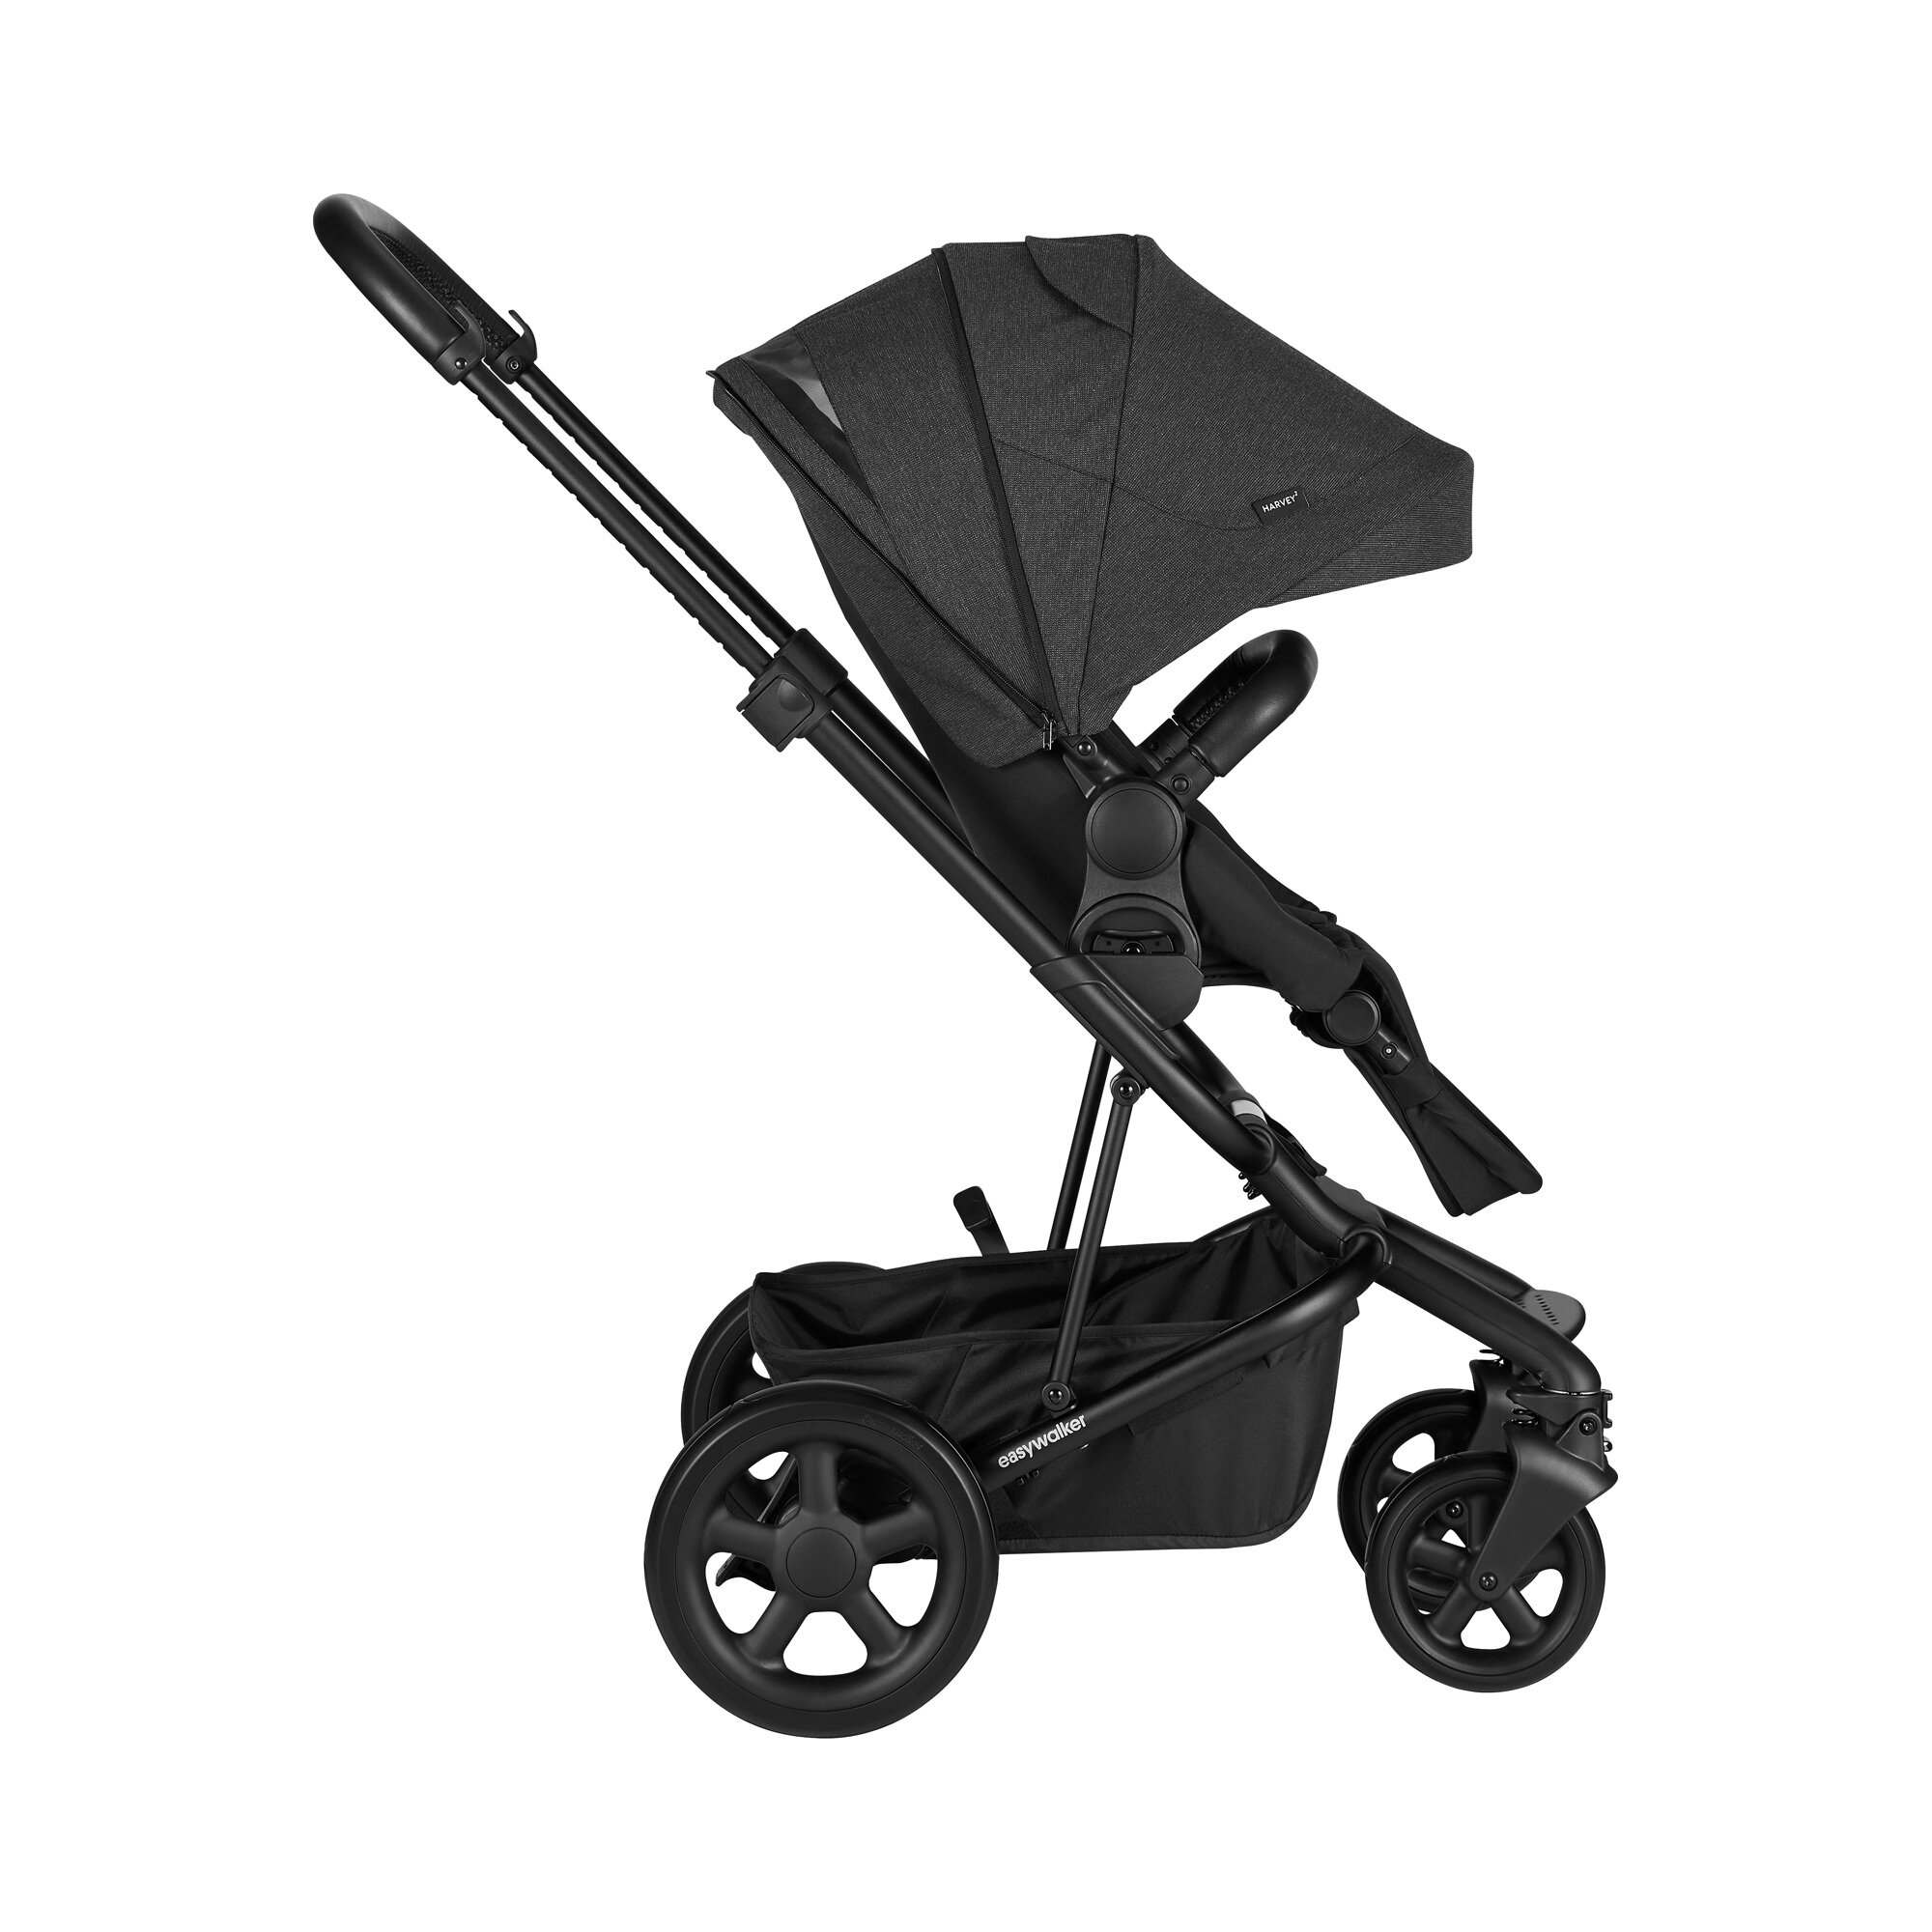 easywalker-harvey-kinderwagen-schwarz